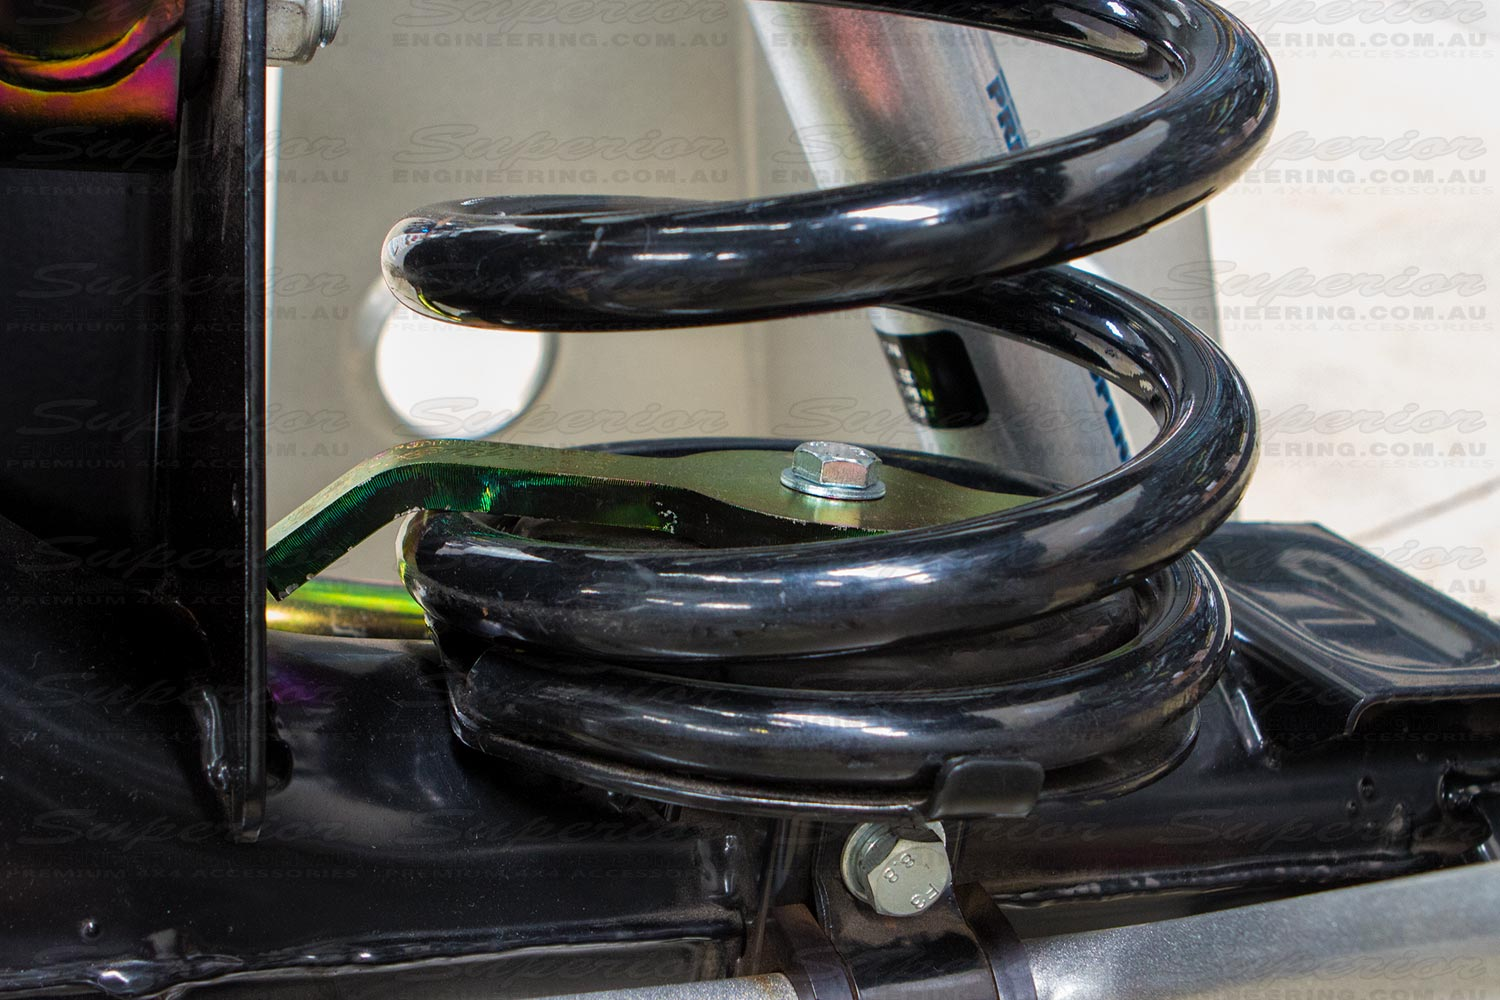 Closeup view of the heavy duty Coil Retainer installed and fitted to the chassis display diff holding down a black Superior coil spring